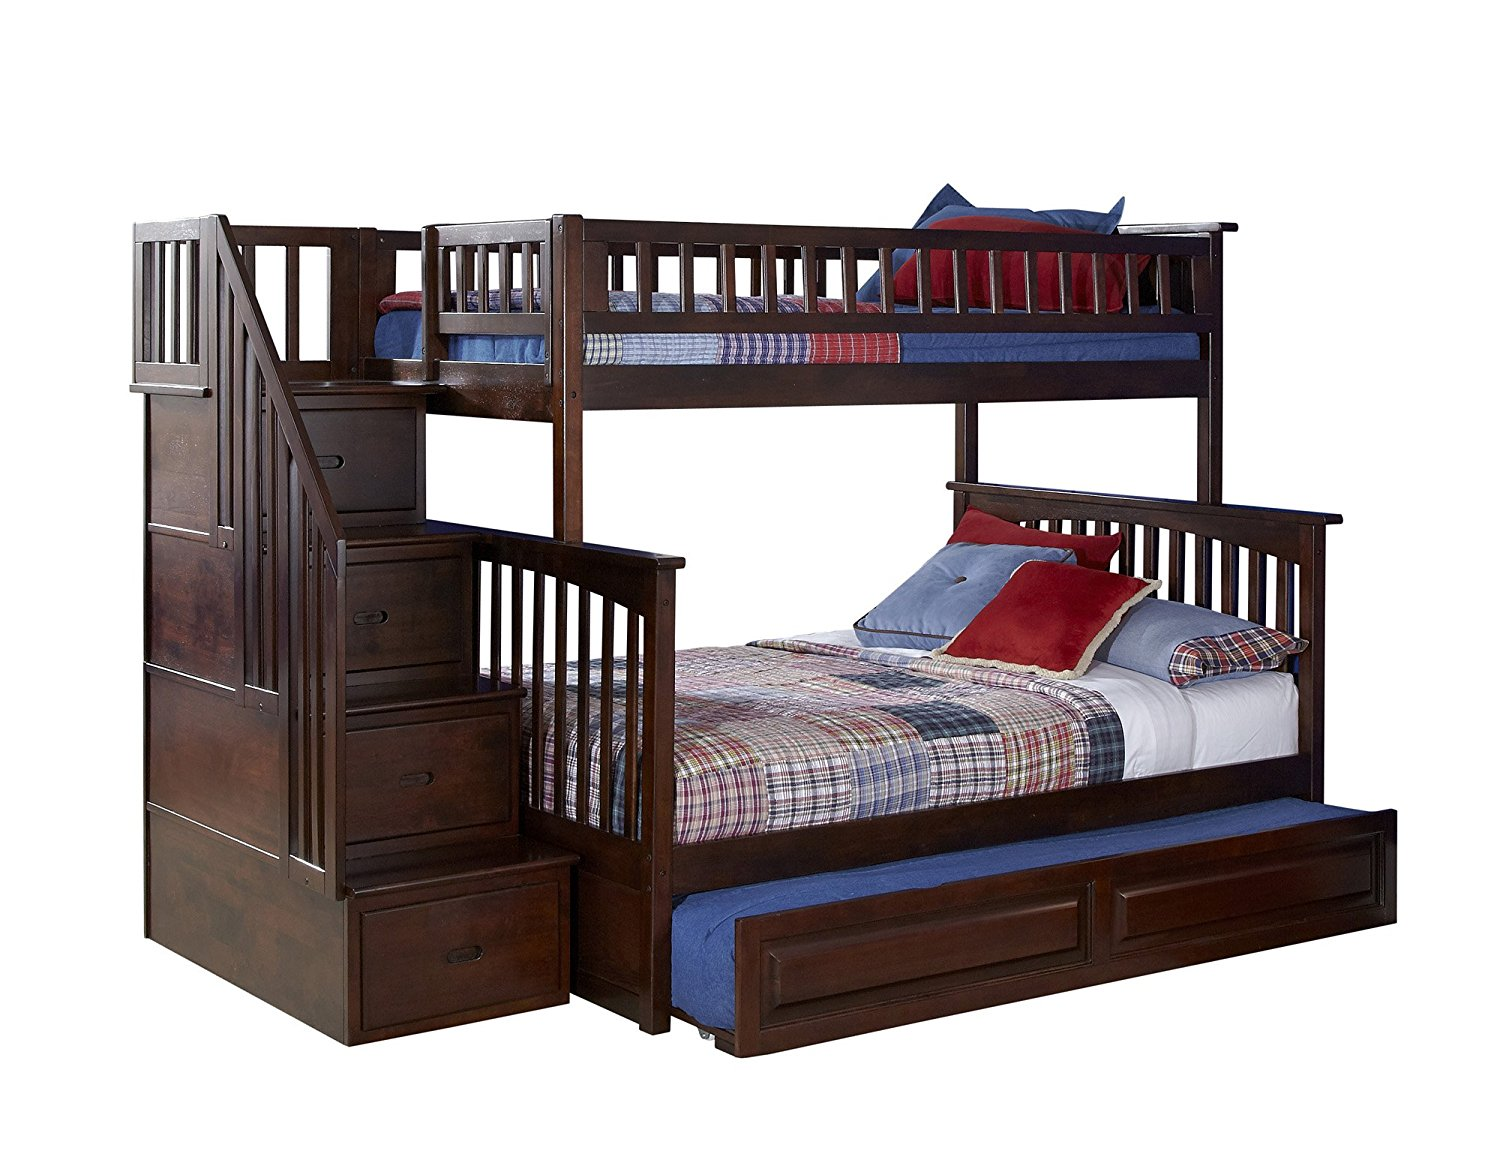 Columbia Staircase Bunk Bed with Trundle Bed, Twin Over Full, Antique Walnut